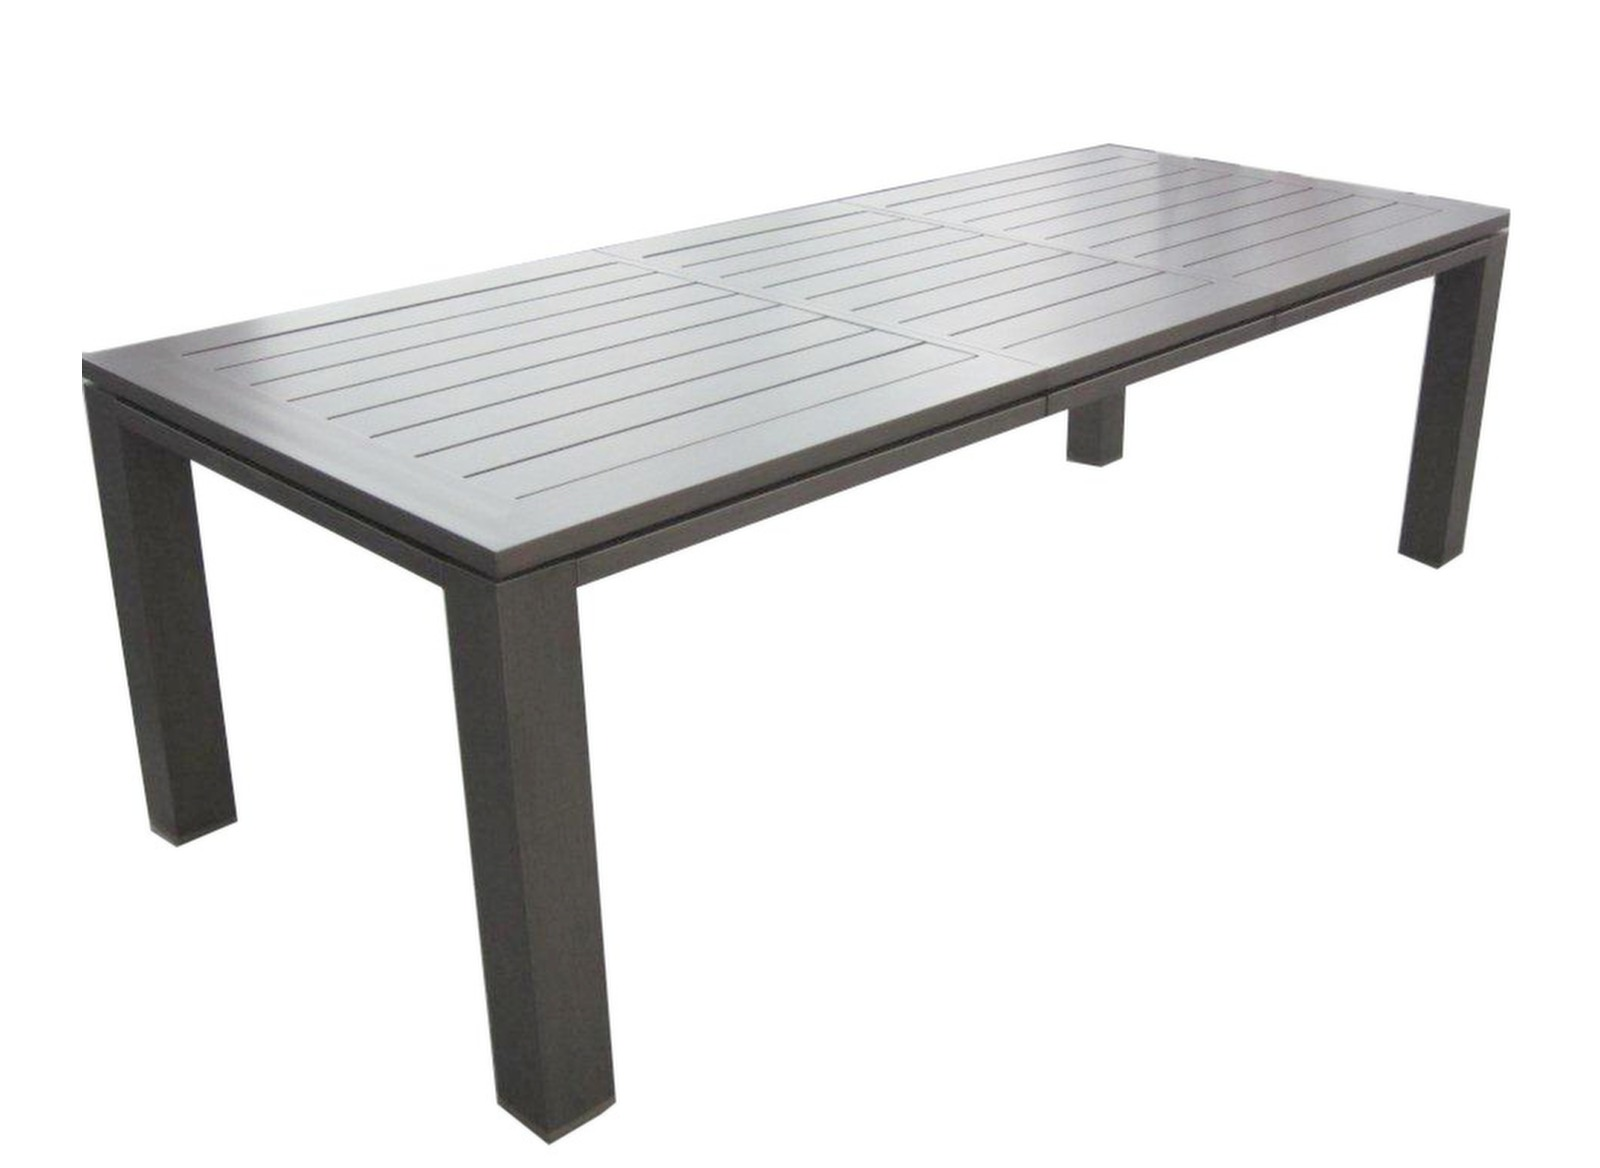 Table de jardin aluminium 180 240cm latino oc o proloisirs - Table en aluminium exterieur ...